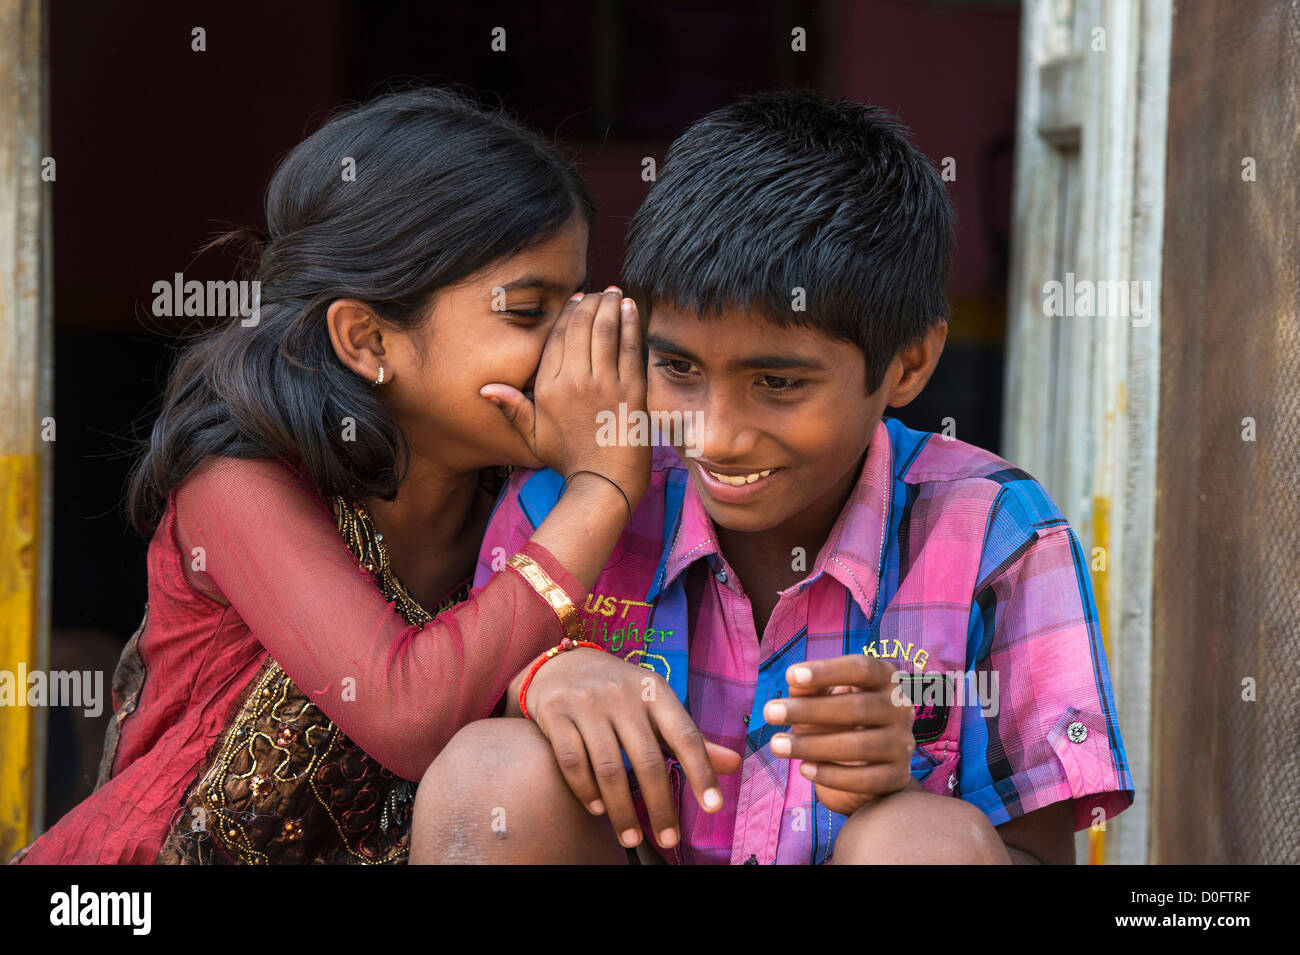 Young Indian girl whispering to a boy outside their rural Indian viilage home. Andhra Pradesh, India Stock Photo